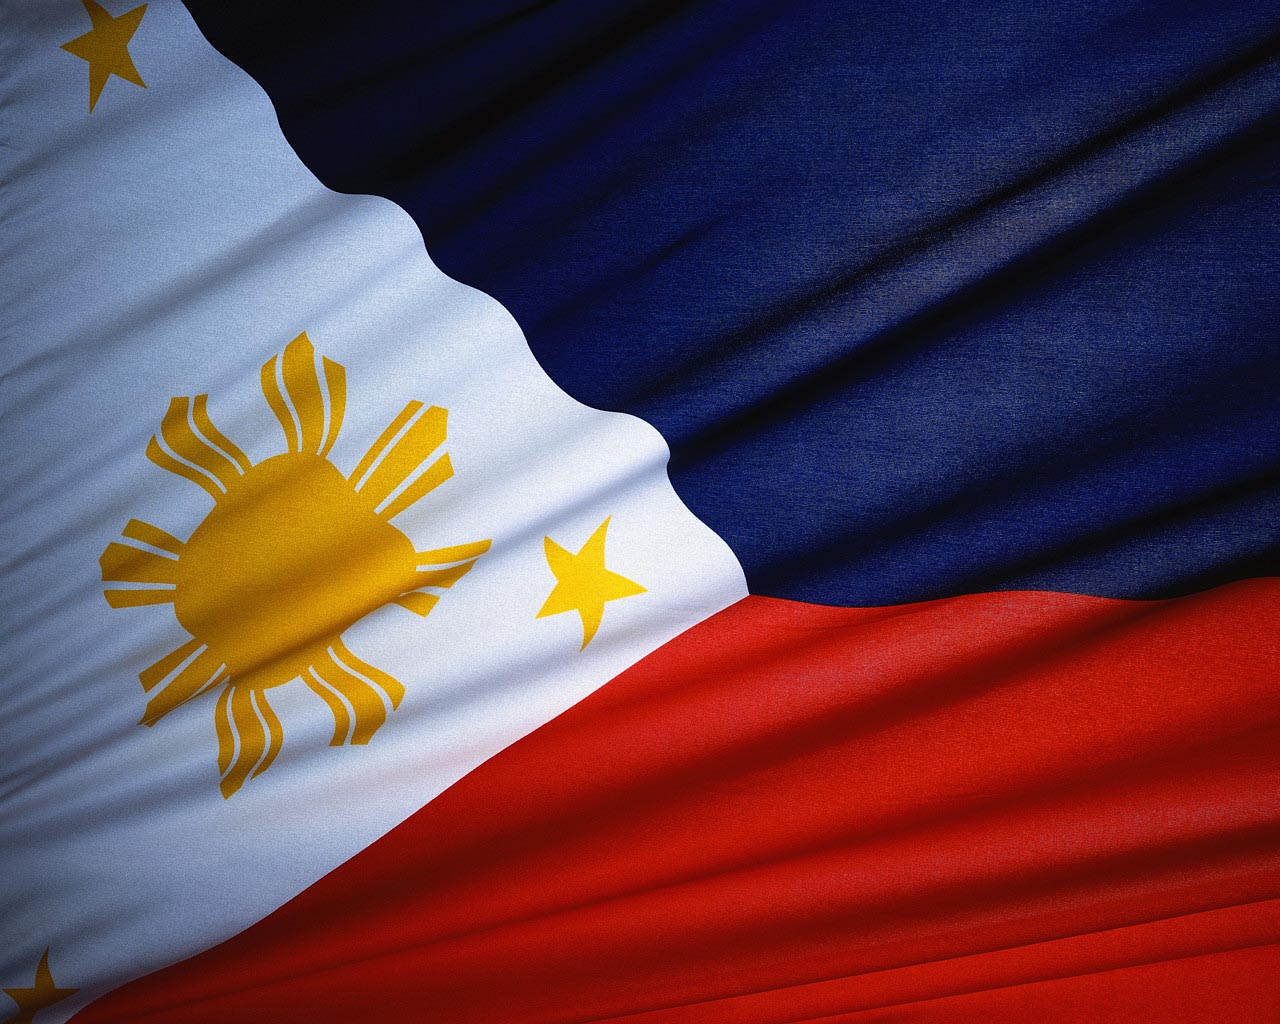 philippine-flag-windy - How do you show your love for your country? - Question and Answer